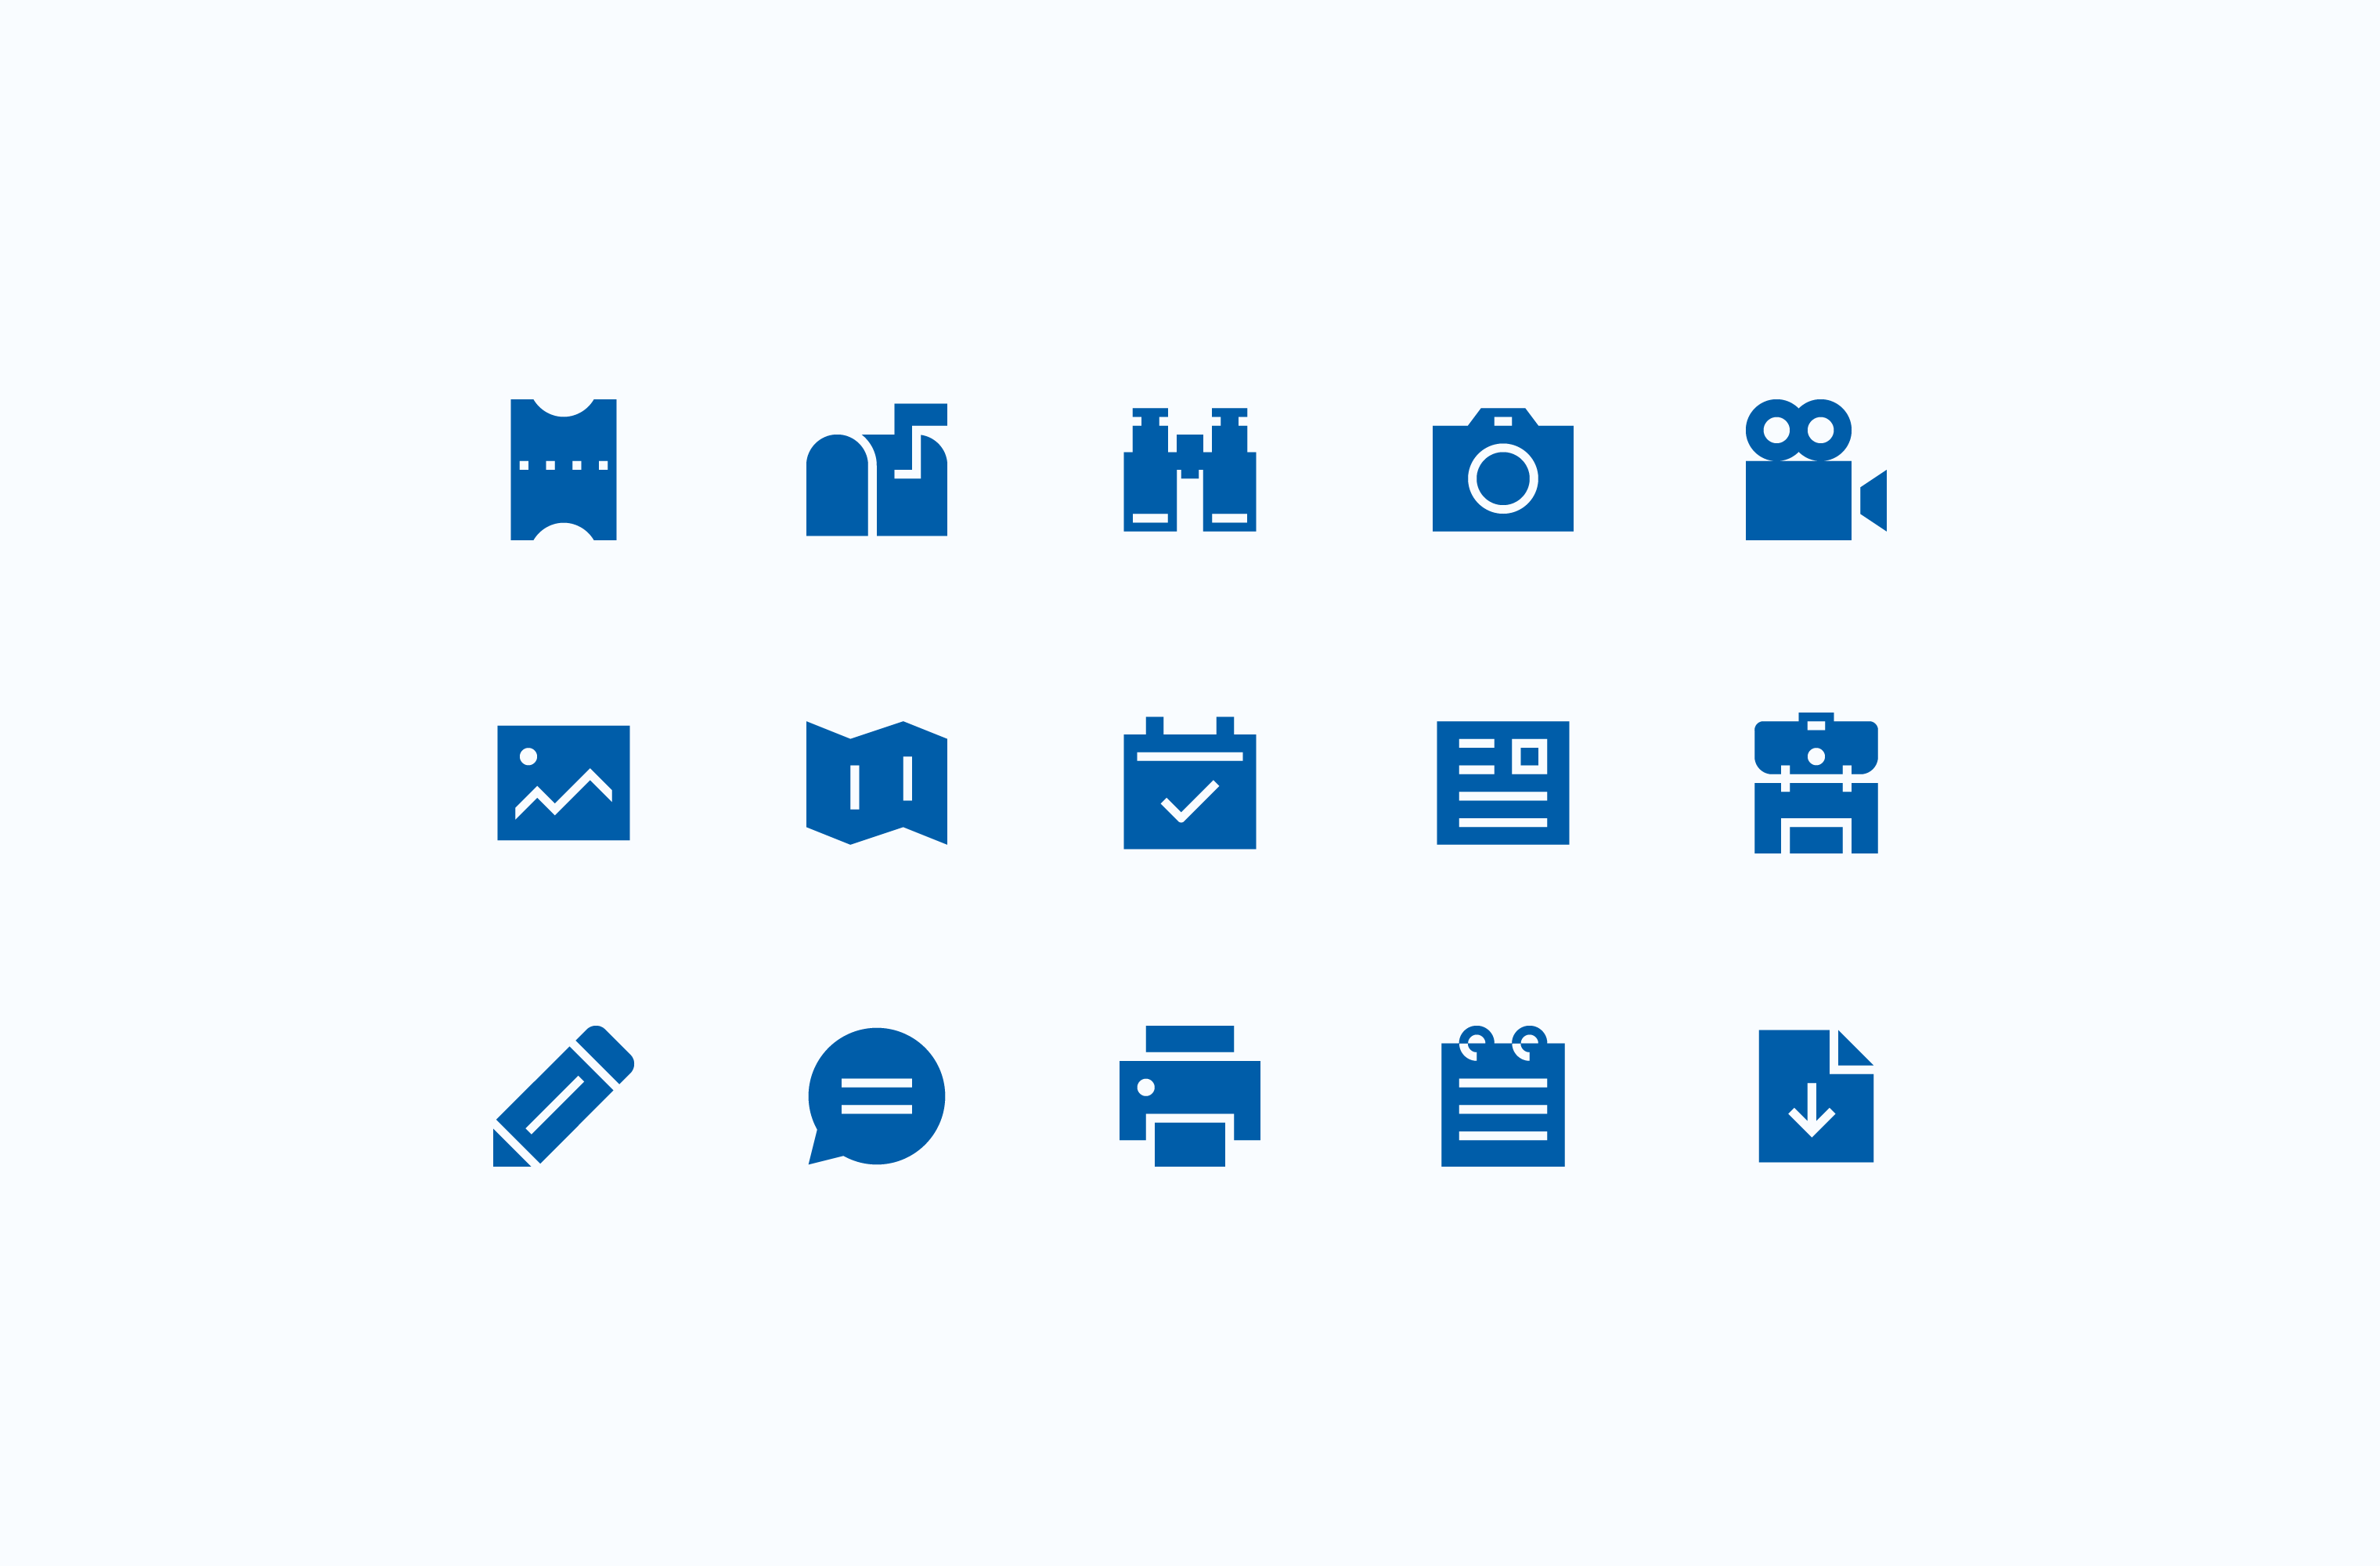 OARS trip itinerary icon set